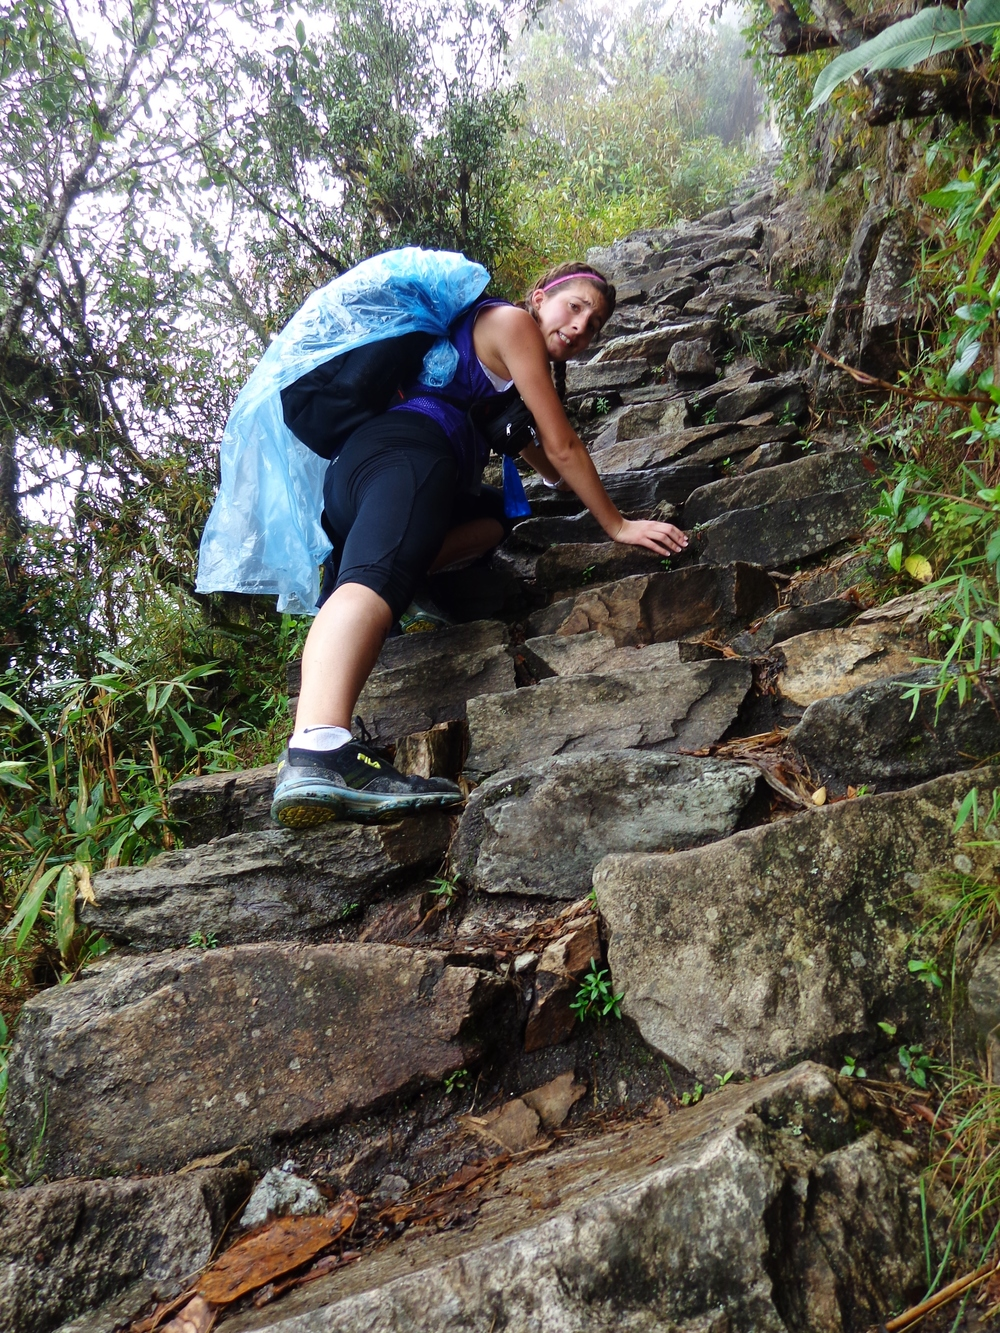 Yup, that's me (practically) vertically climbing Machu Picchu.